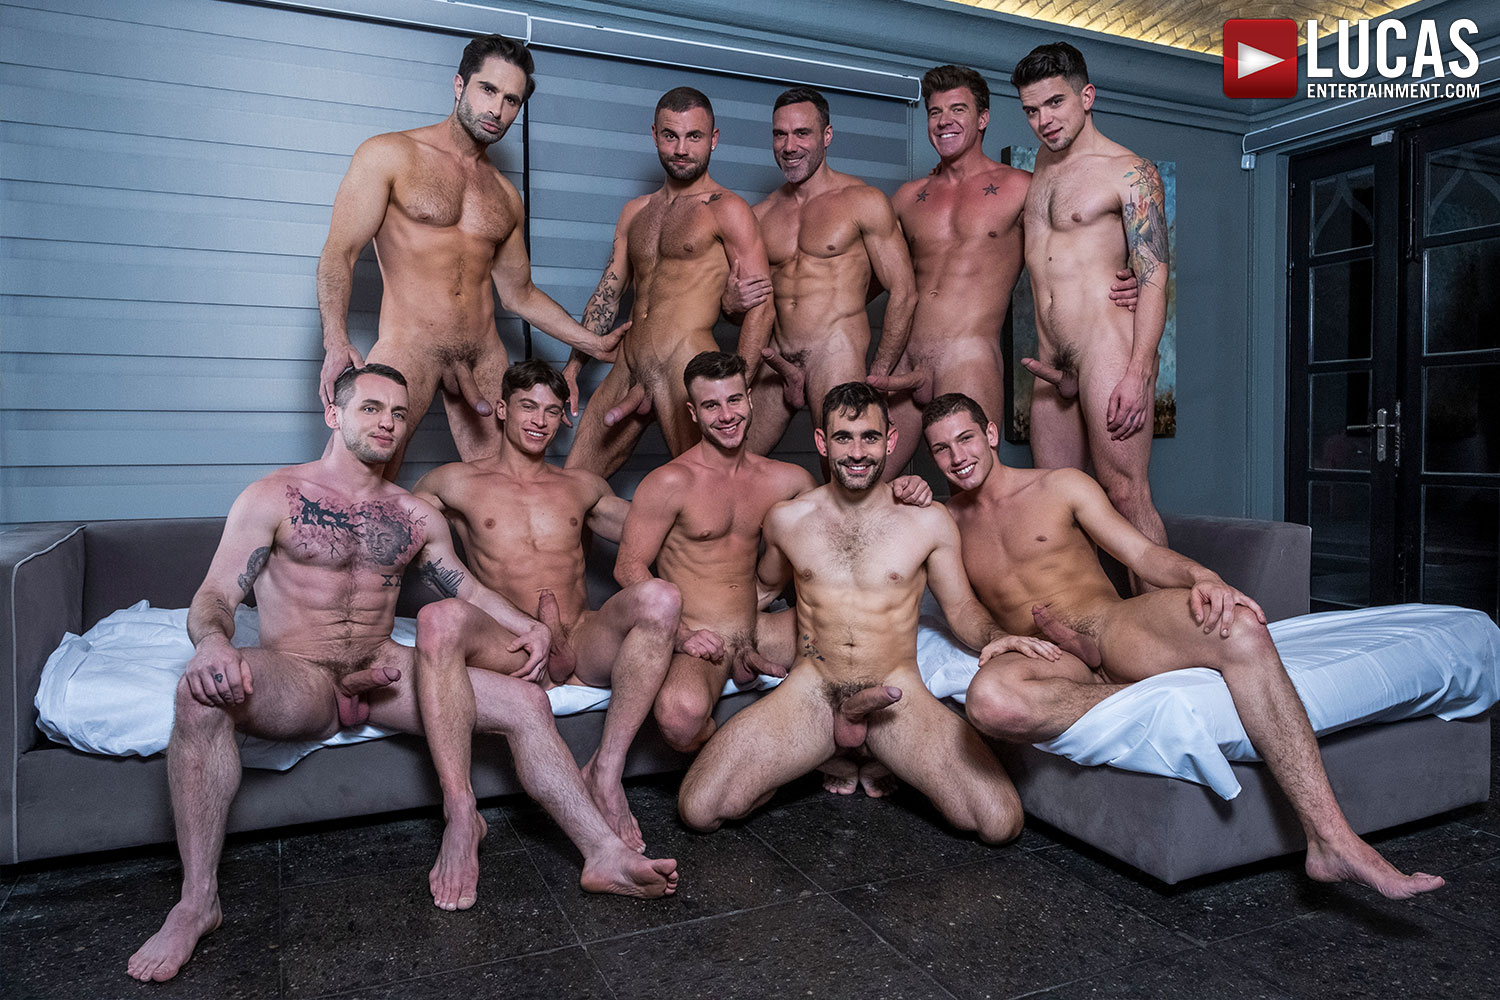 Join The Sweaty All-Star Orgy (Part 02) - Gay Movies - Lucas Entertainment